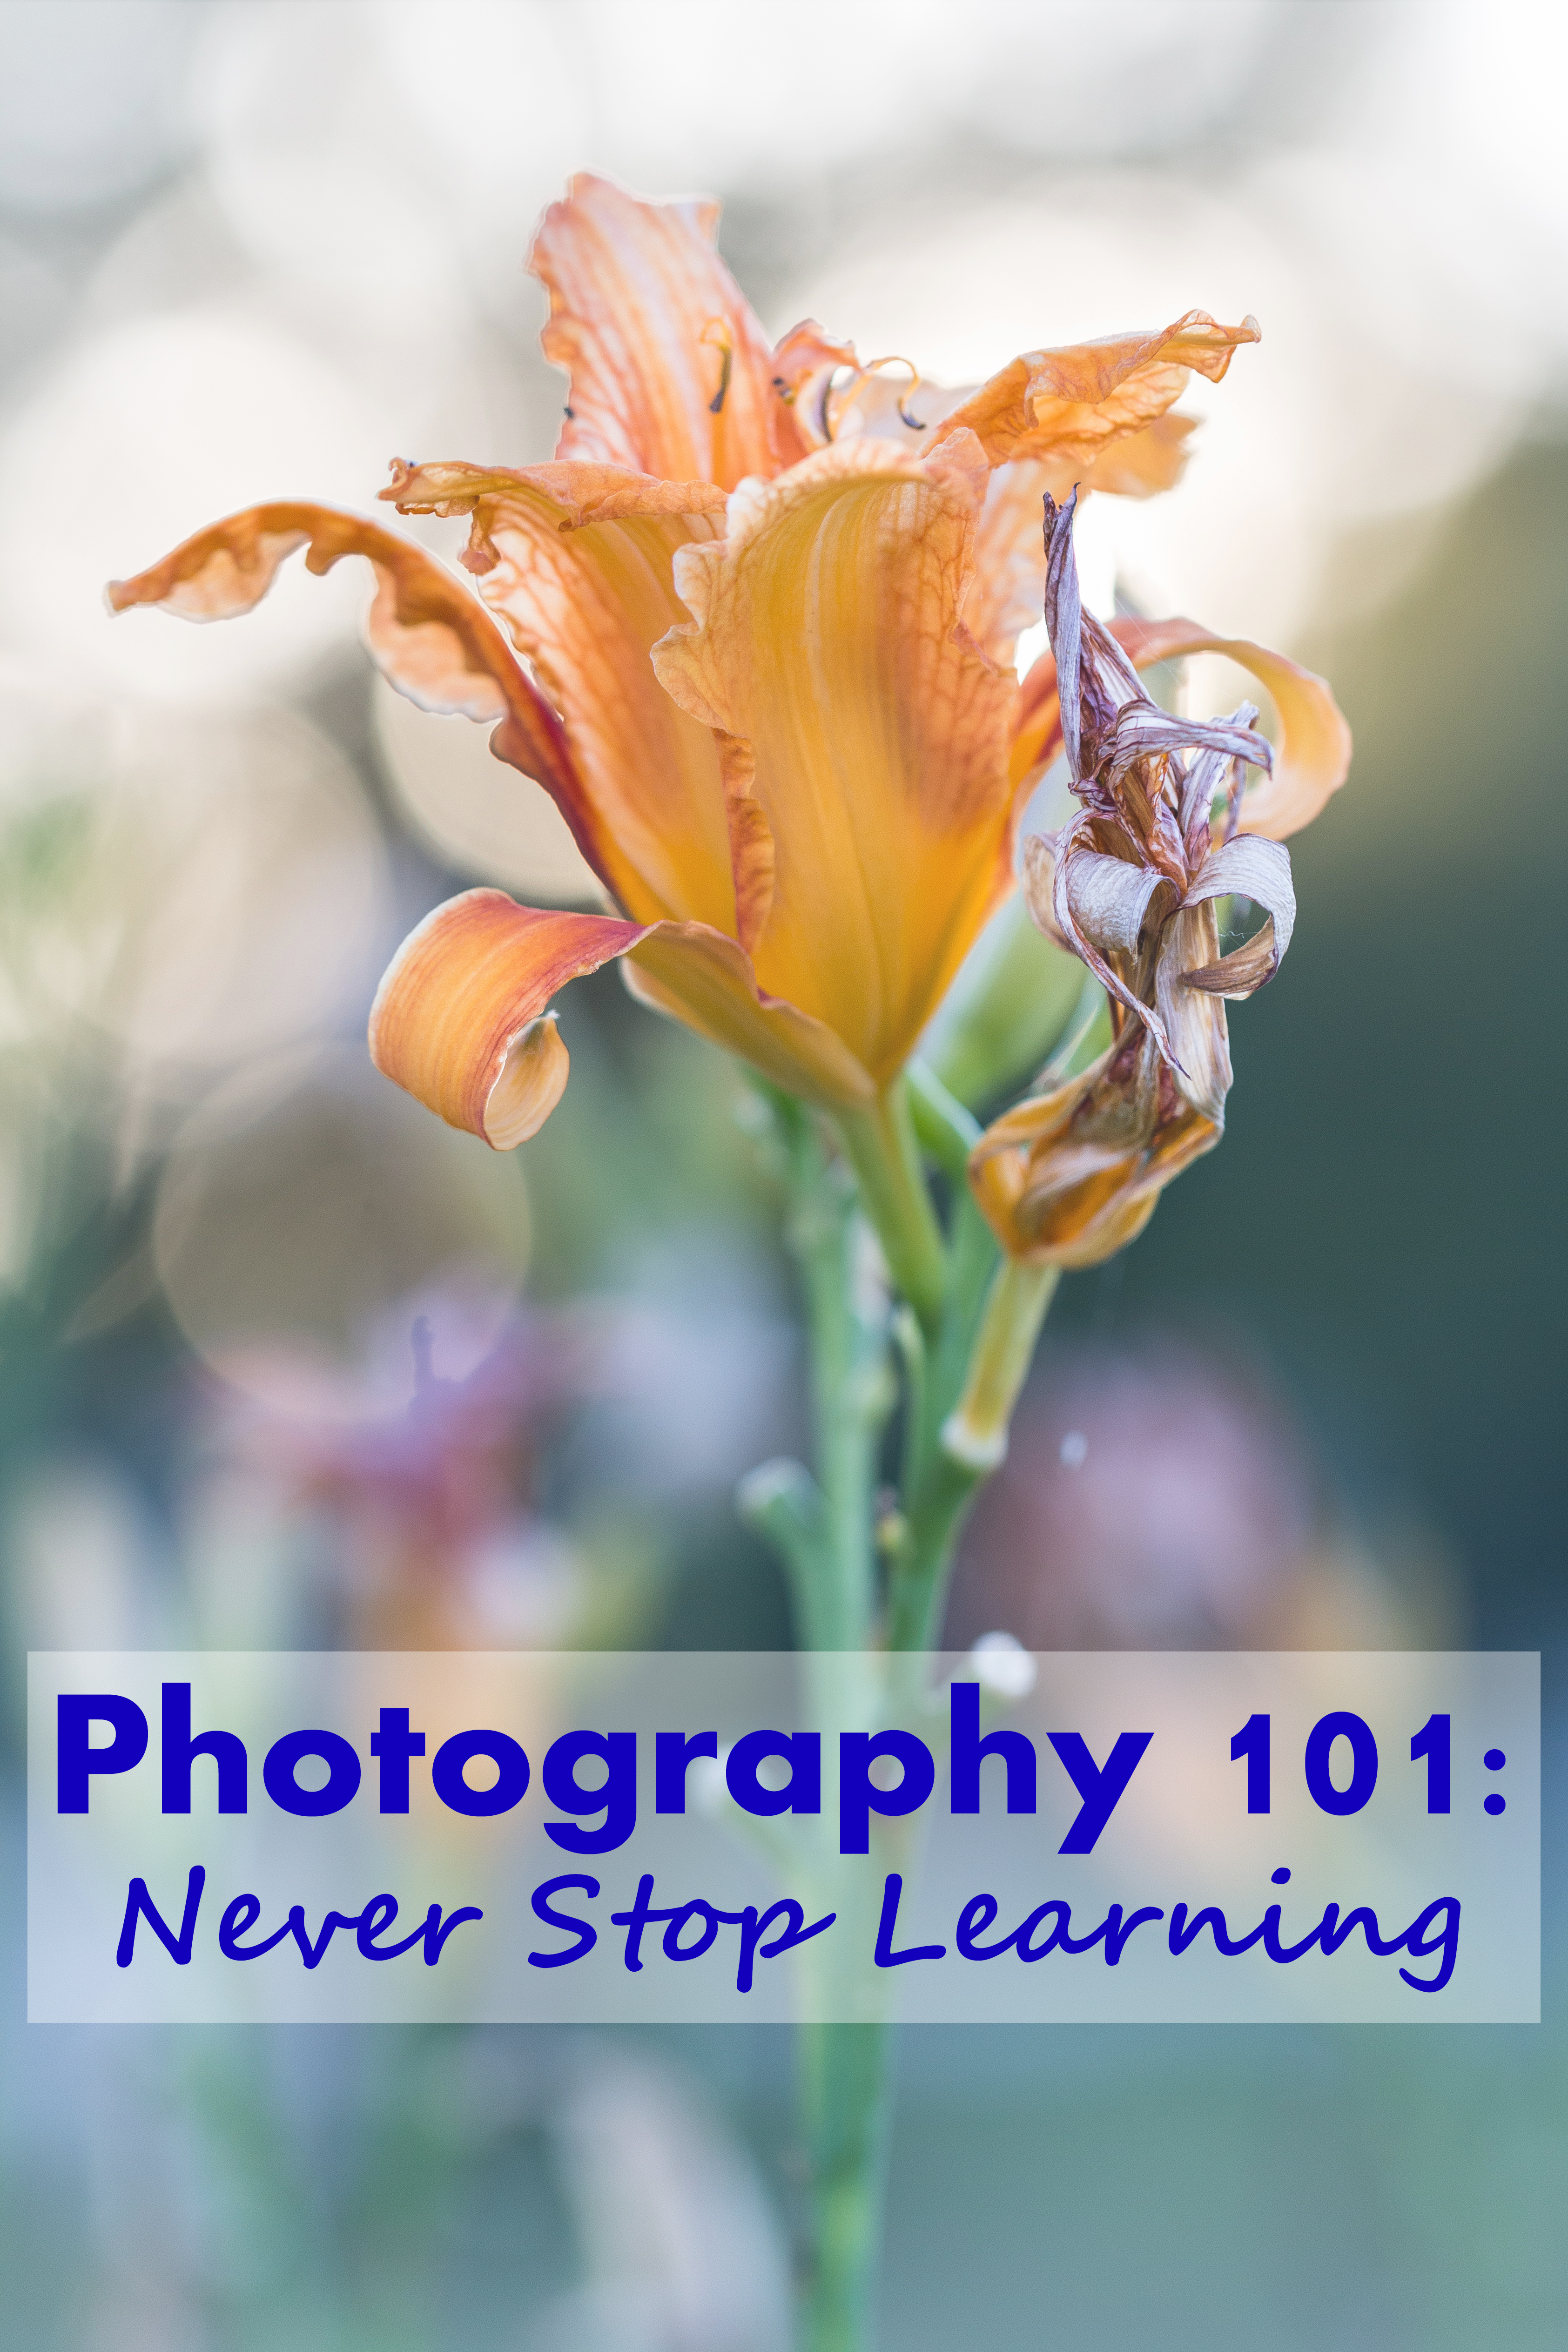 Photography 101: Never Stop Learning - Making an effort to learn new technical, composition, and editing techniques on a regular basis is key to staying current in the field and continuing to improve your skills as a photographer. | https://www.roseclearfield.com